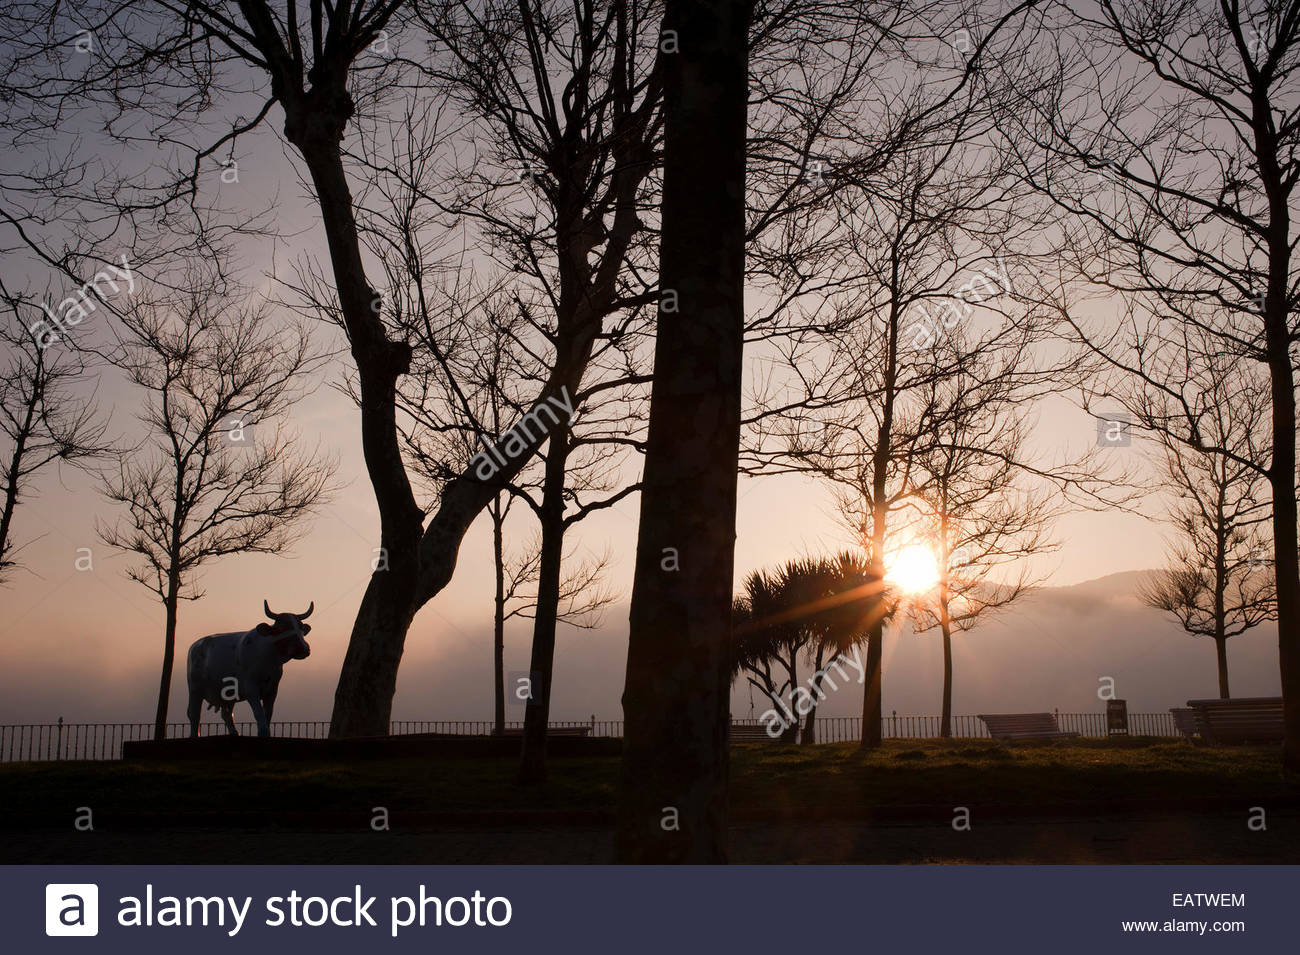 A statue of a bull at sunrise. - Stock Image